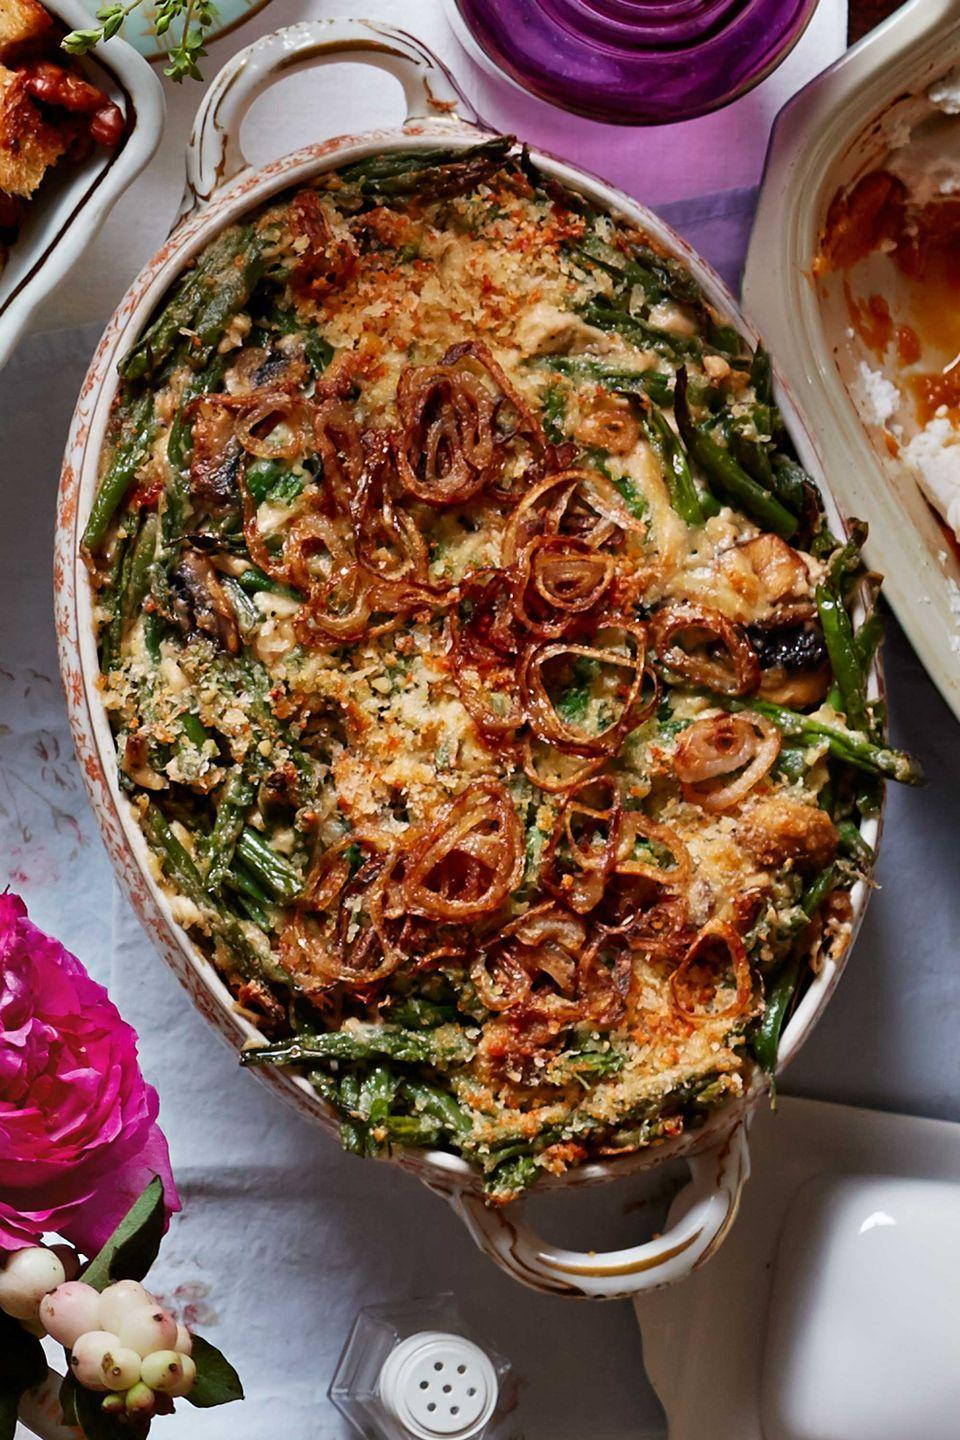 """<p>Skip the store-bought crispy onions. This once-a-year dish deserves to be topped with handmade fried shallots! A rich sauce and a touch of Parmesan elevates this traditional side. </p><p><strong><a href=""""https://www.countryliving.com/food-drinks/recipes/a5868/green-bean-casserole-fried-shallots-recipe-clx1114/"""" rel=""""nofollow noopener"""" target=""""_blank"""" data-ylk=""""slk:Get the recipe"""" class=""""link rapid-noclick-resp"""">Get the recipe</a>.</strong></p>"""